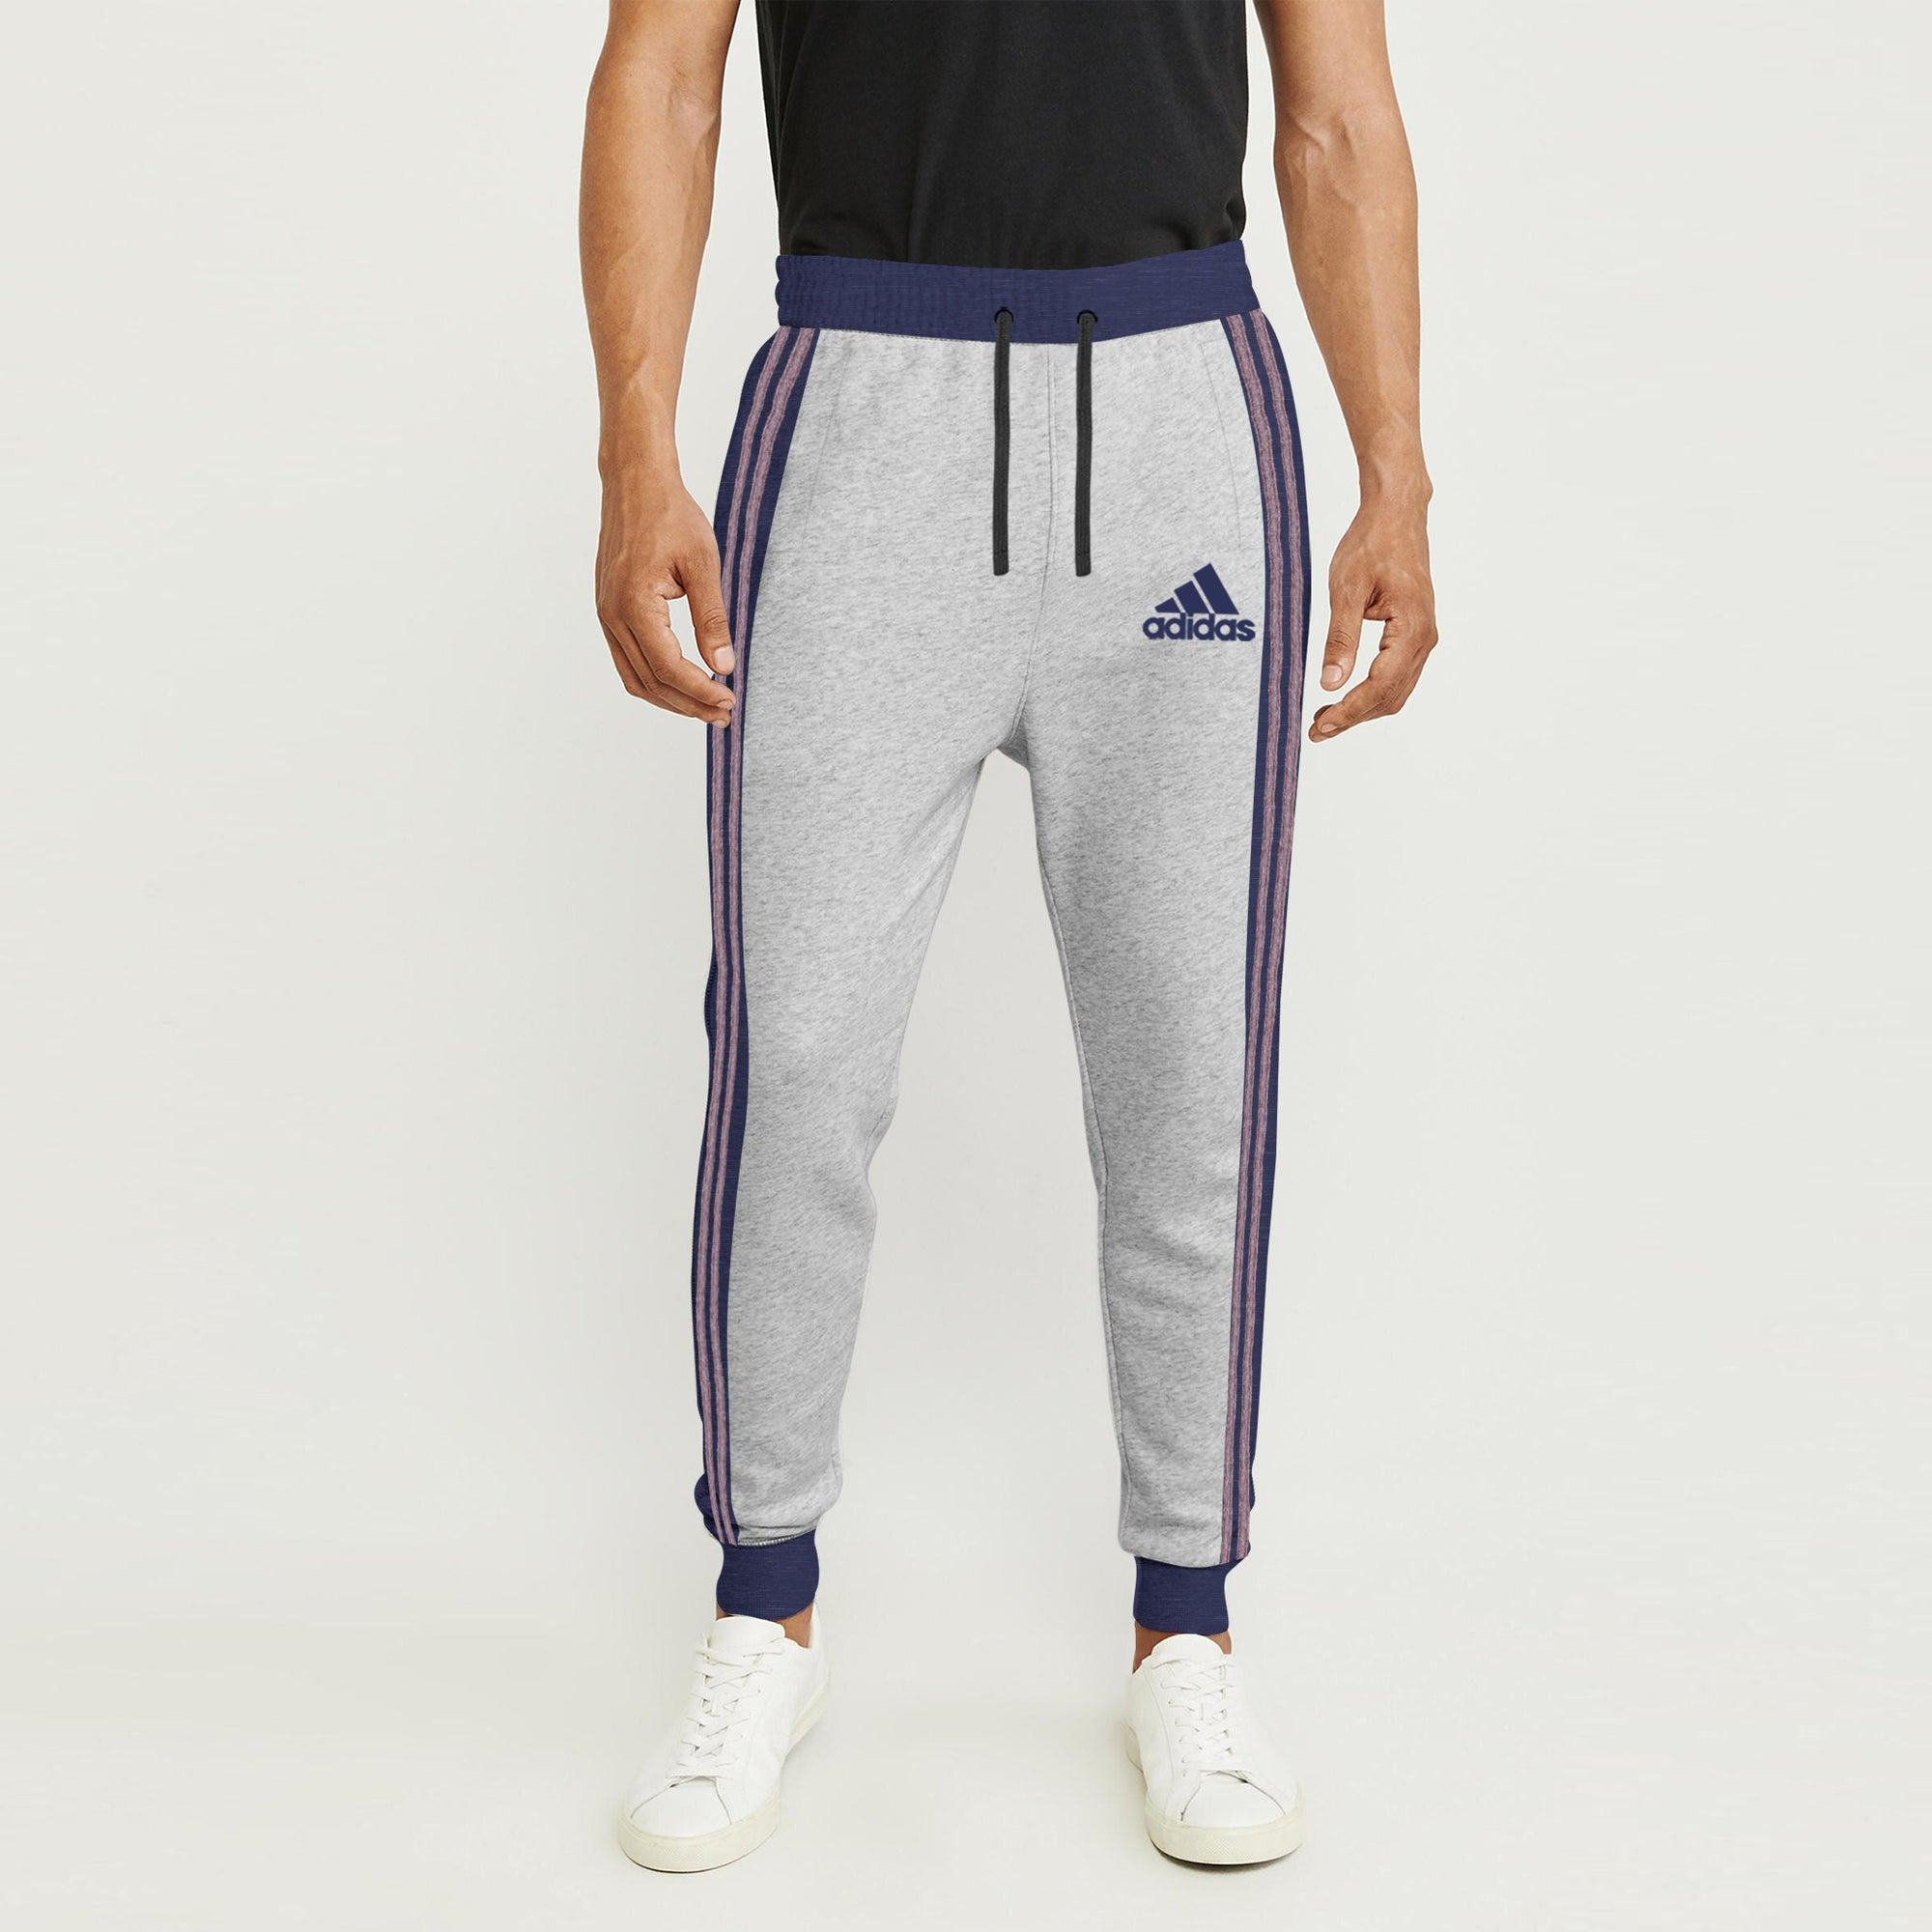 attractive price buying new new collection Adidas Single Jersey Slim Fit Jogger Trouser For Men-Grey Melange With Navy  Melange & Red Melange Stripe-SP292